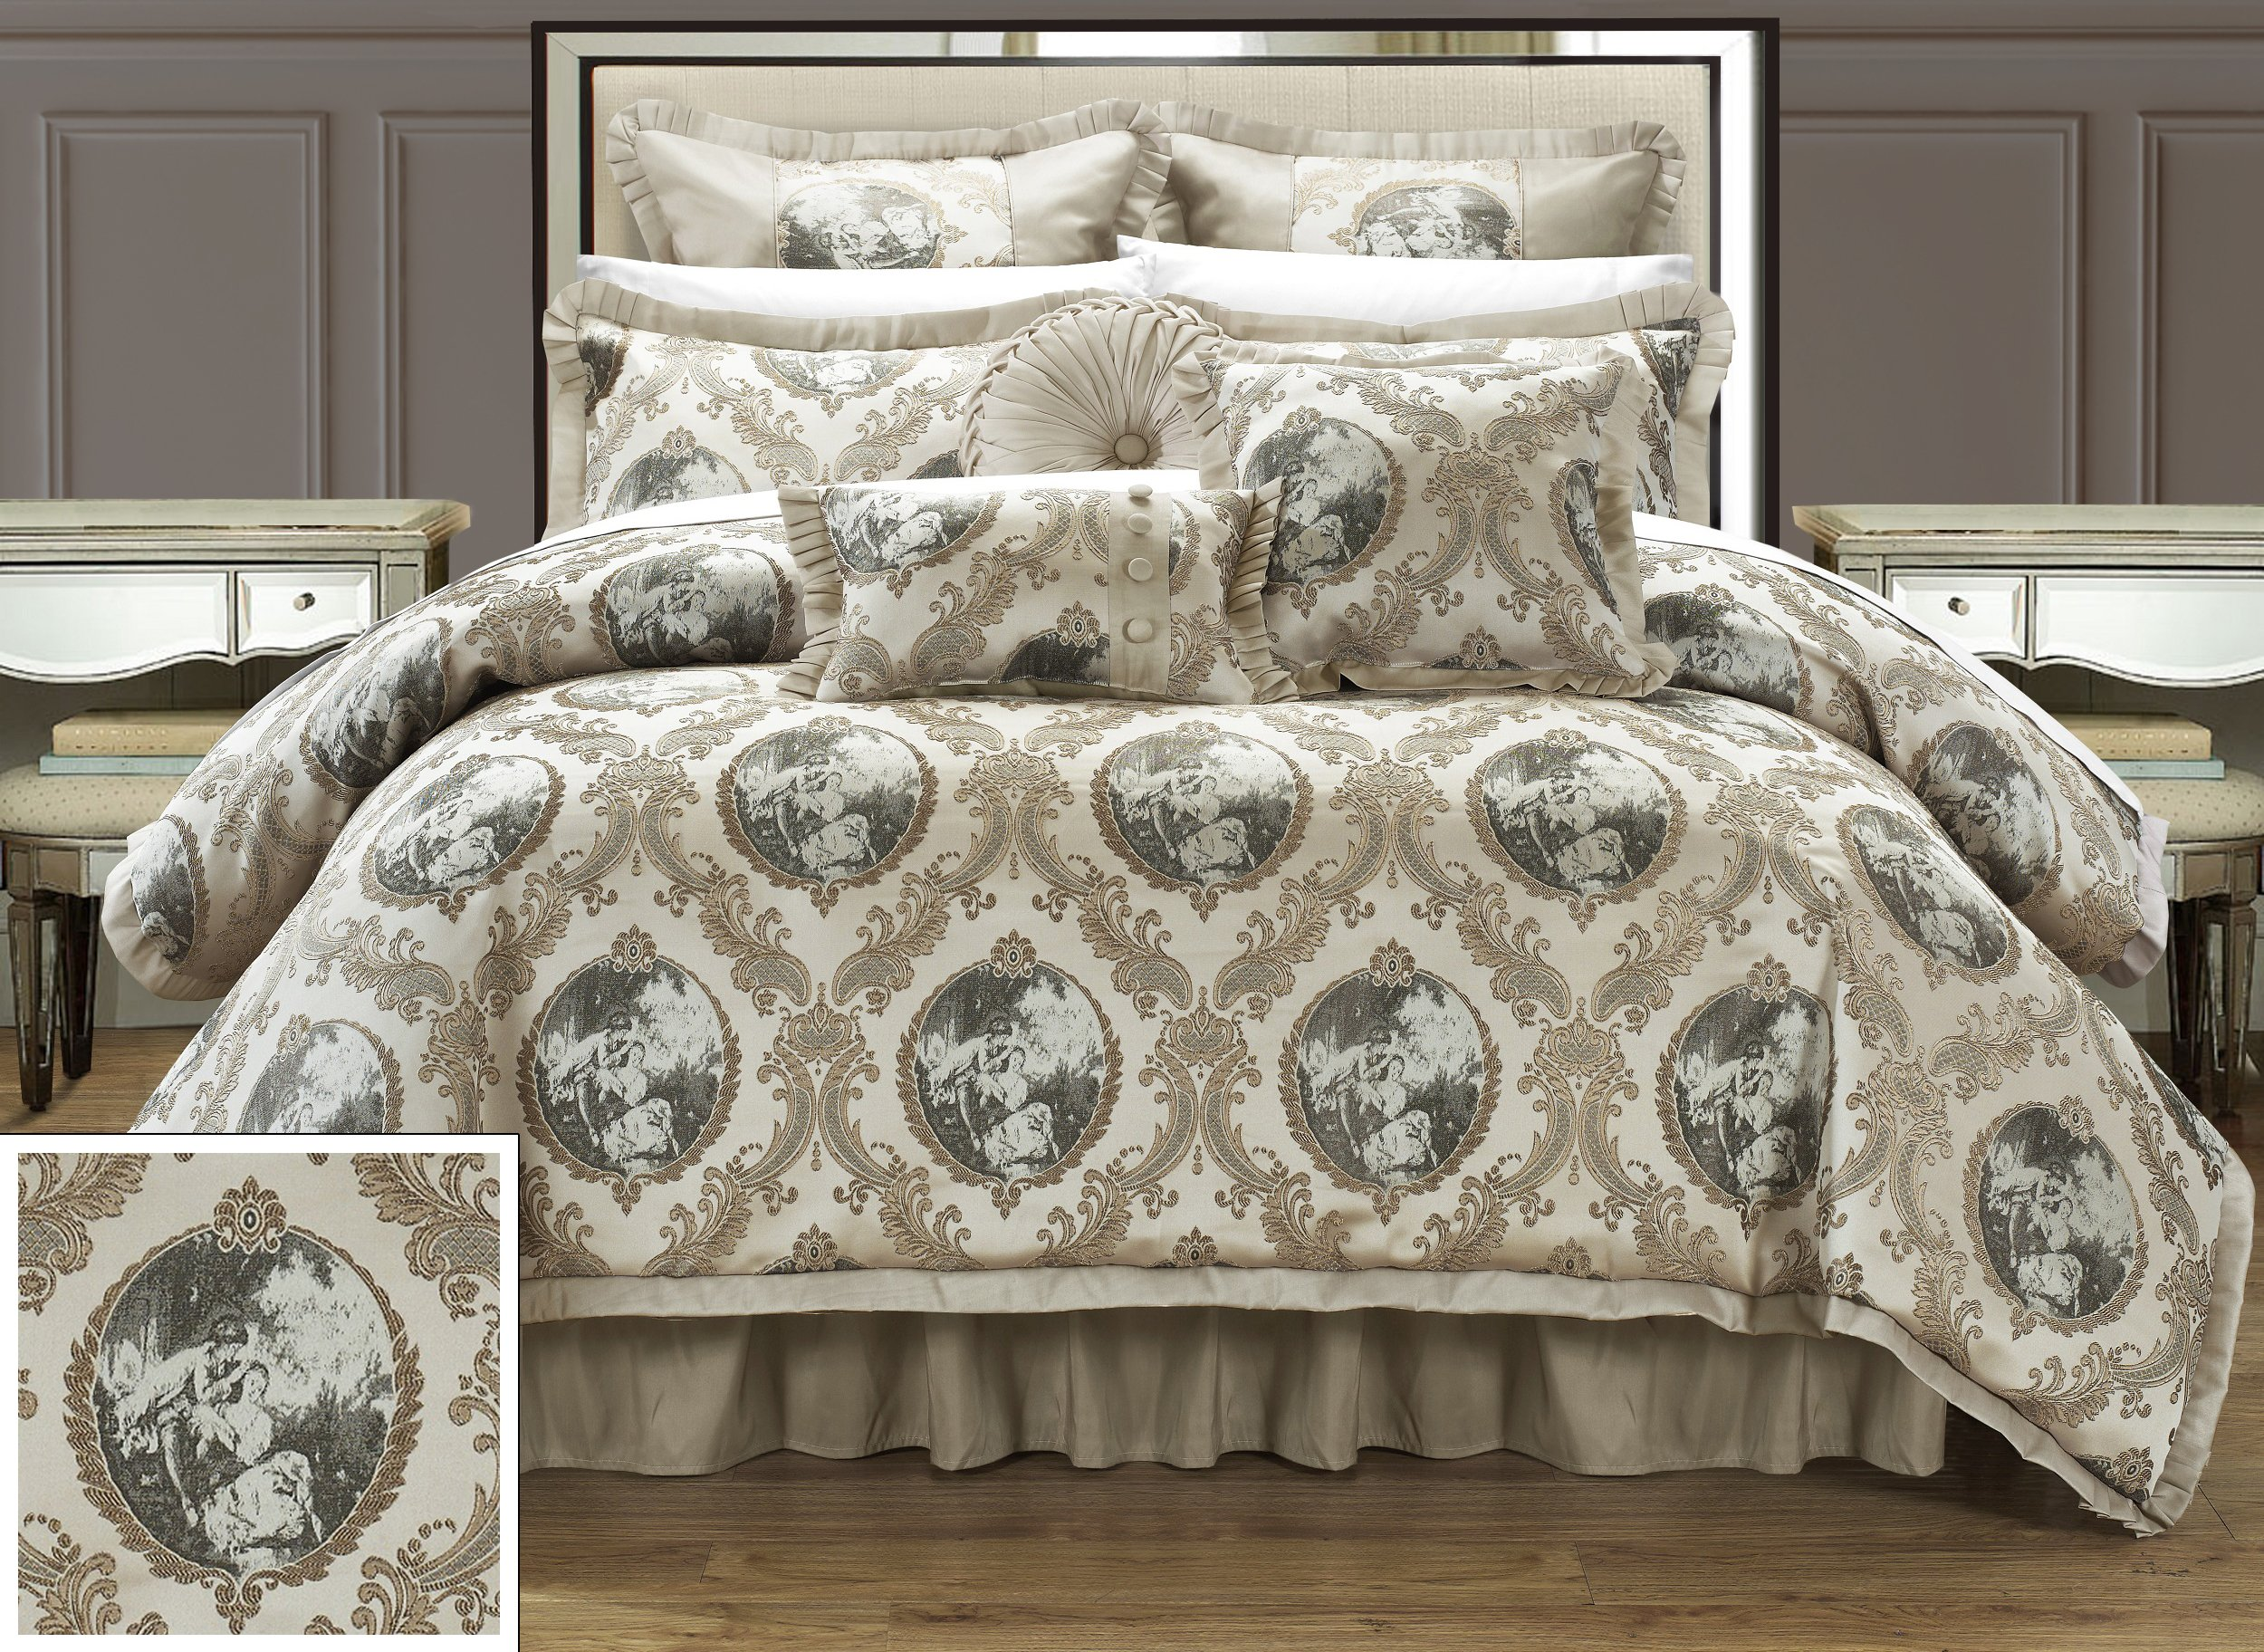 """Chic Home 9 Piece Romeo and Juliet Decorator Upholstery Comforter Set with Pillows Ensemble King Beige - 1pc Comforter with Faux silk pleated flange: 110x96"""" , 2pc Pillow Sham: 20x36+2"""" , 2pc Euro Sham Faux silk: 26x26+1.5 inch Flange, 1 Bed skirt pleated faux silk: 78x80+15"""" , 1pc Cushion: 18x18"""" , 1pc Rectangle Pillow: 12x18"""" , 1 Round Pillow: 16"""" Oversized Overfilled Elegant decorative pillows highlight the essence of this comforter set - comforter-sets, bedroom-sheets-comforters, bedroom - A1MBk nbV1L -"""